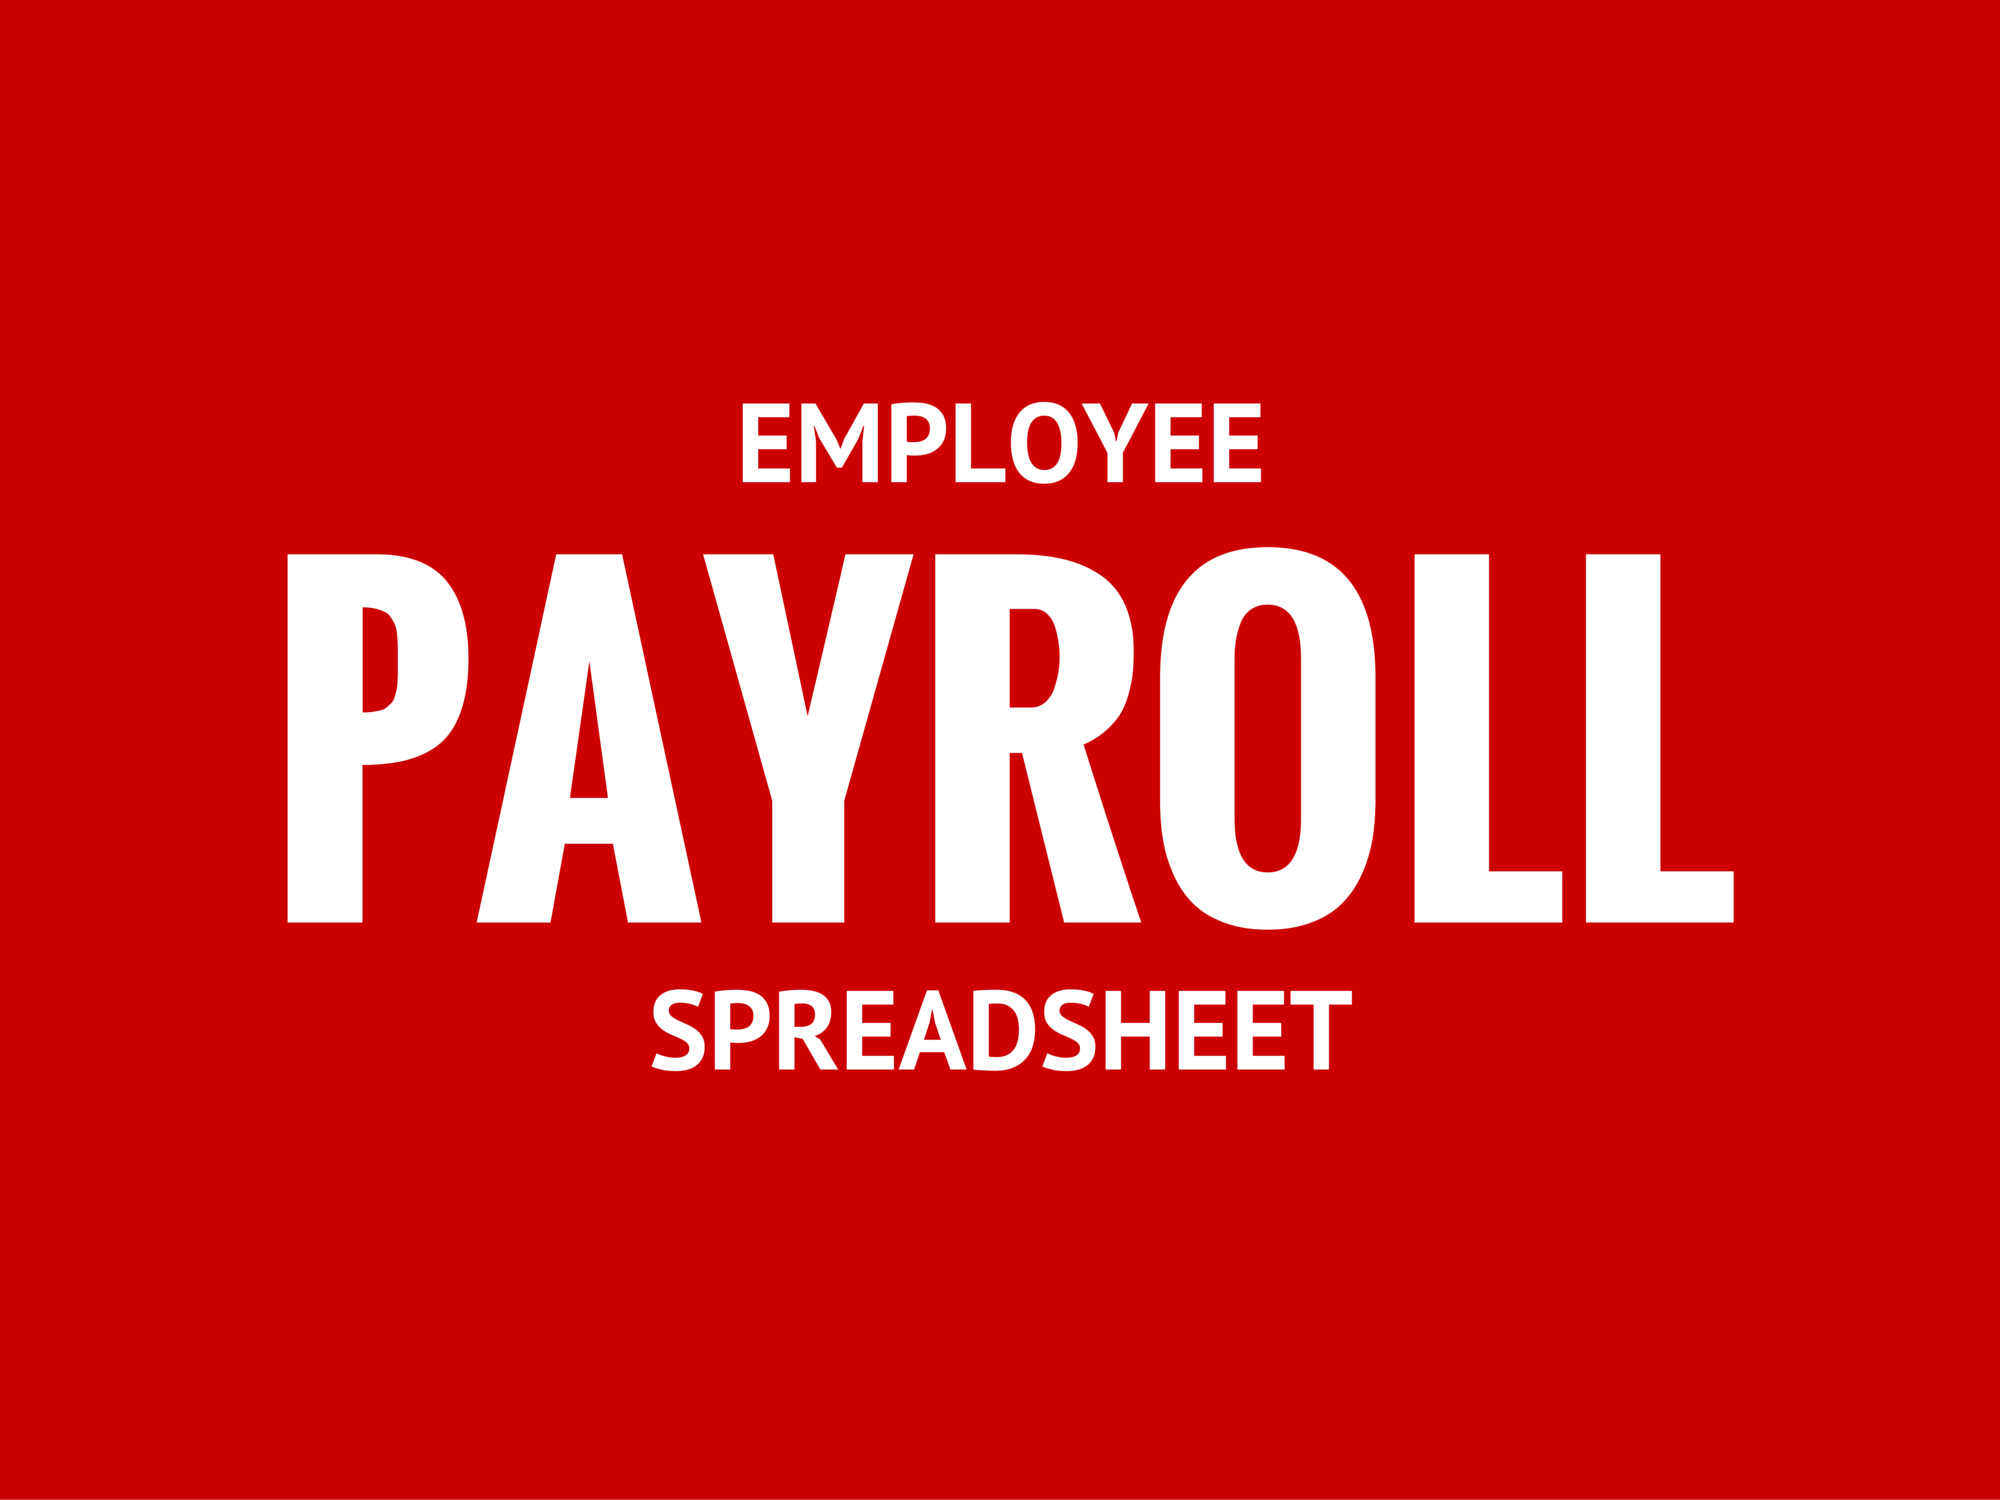 one employee payroll